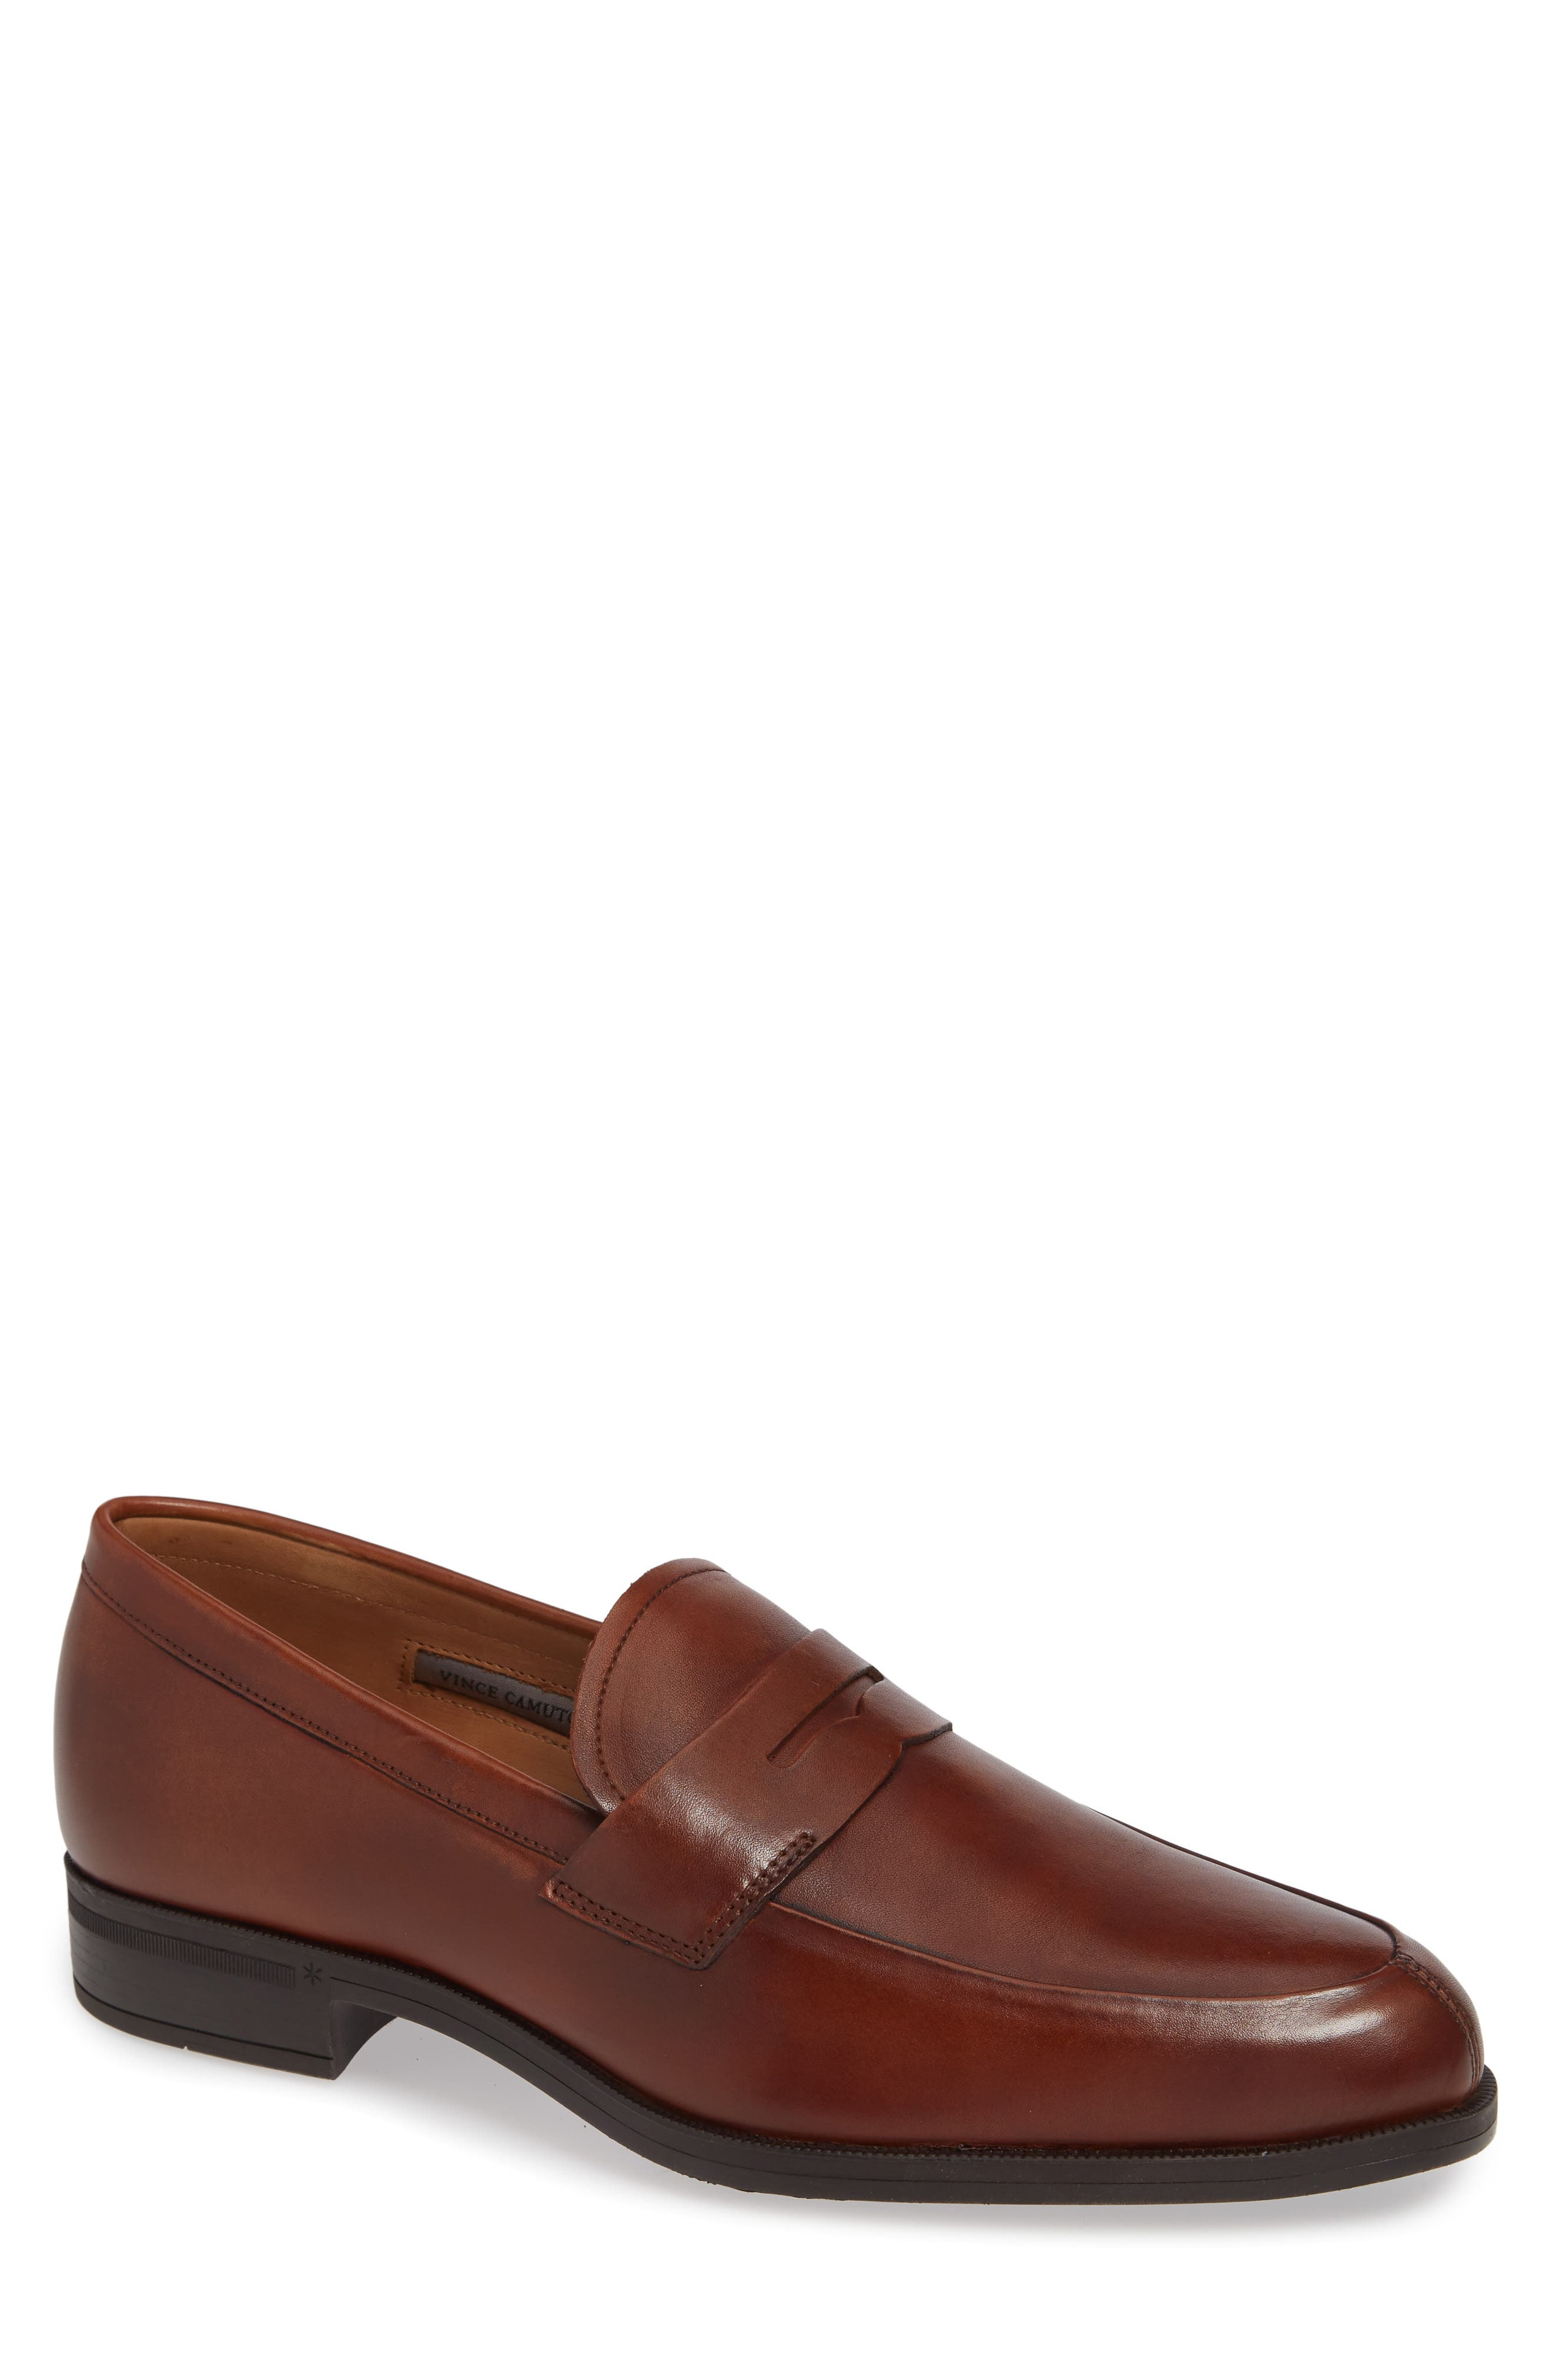 Iggi Penny Loafer,                             Main thumbnail 1, color,                             COGNAC LEATHER